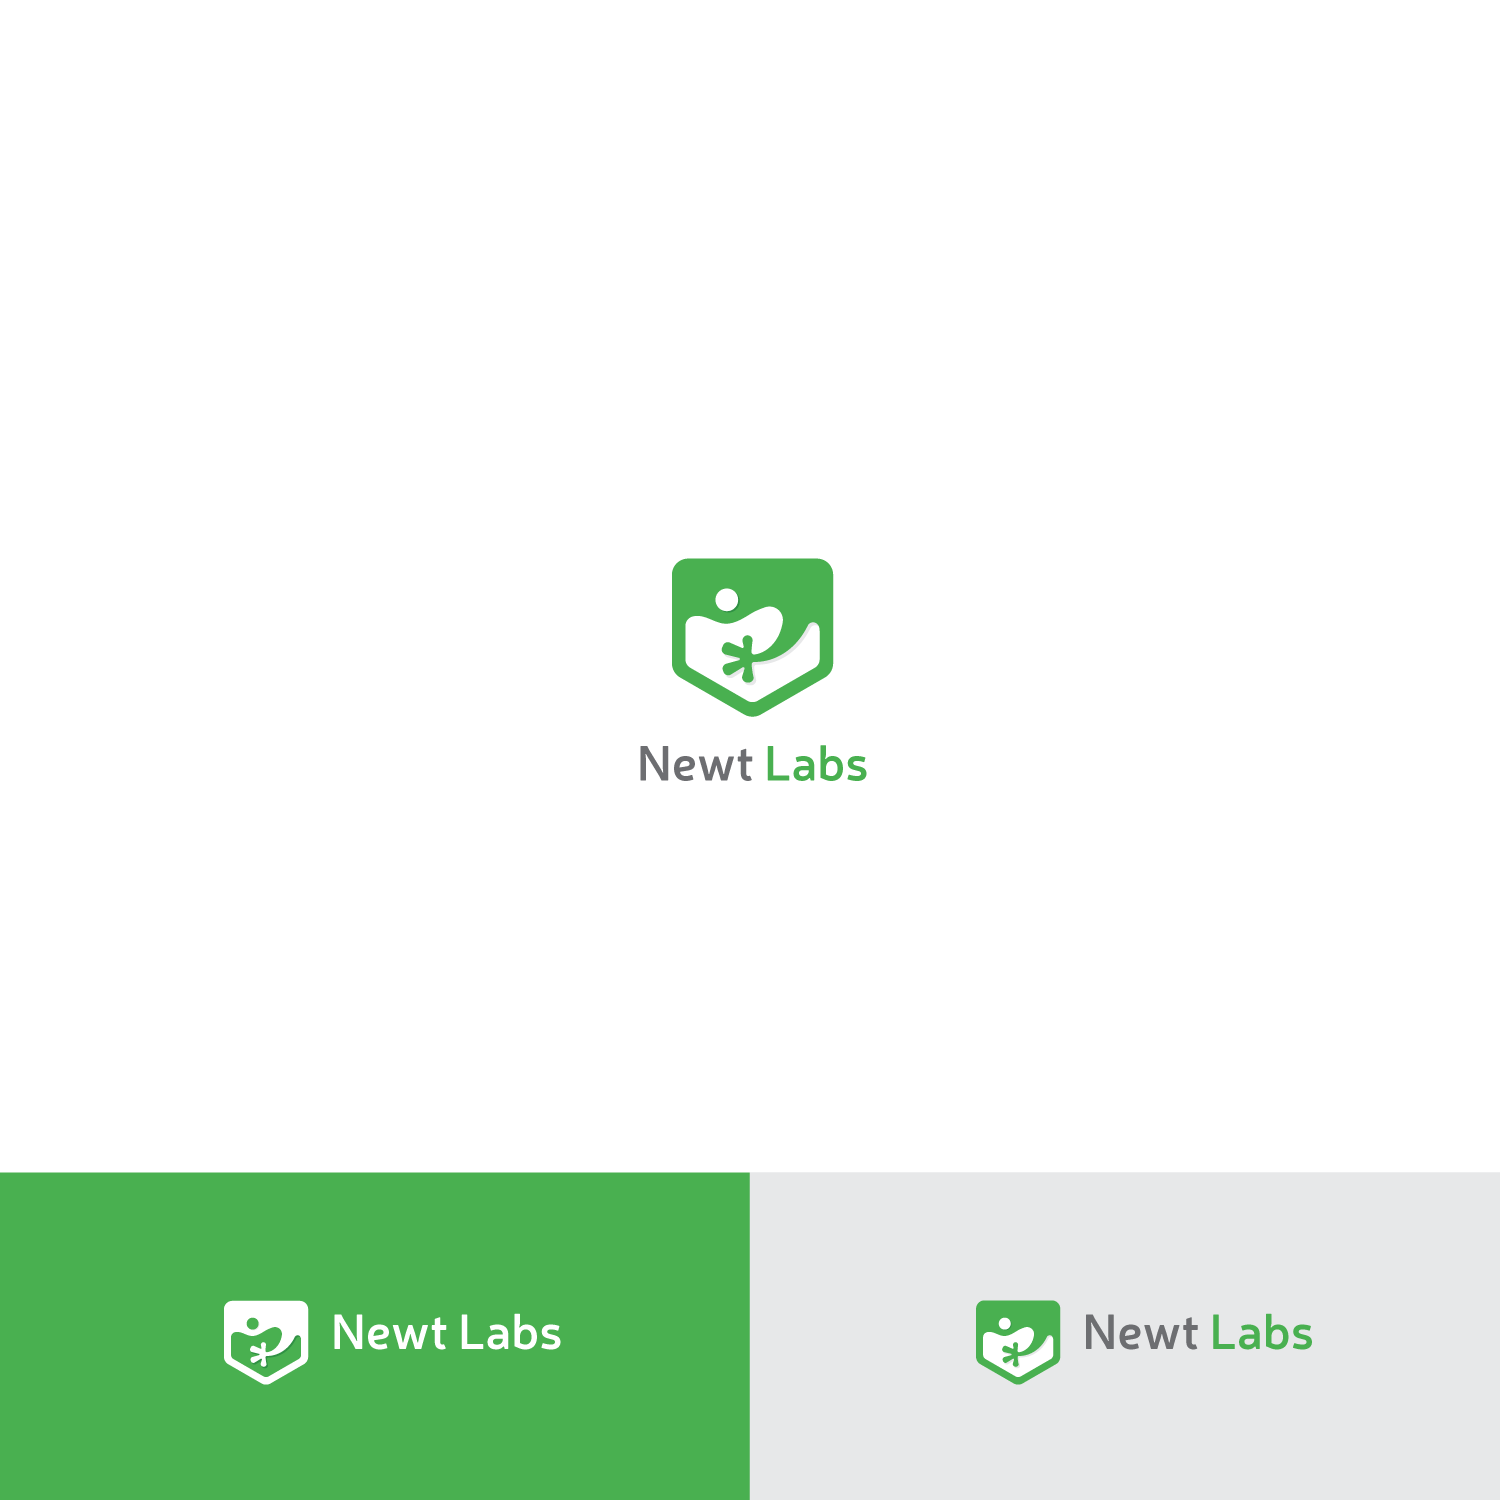 Design A New Logo For Newt Labs WordPress Support & Maintenance Company